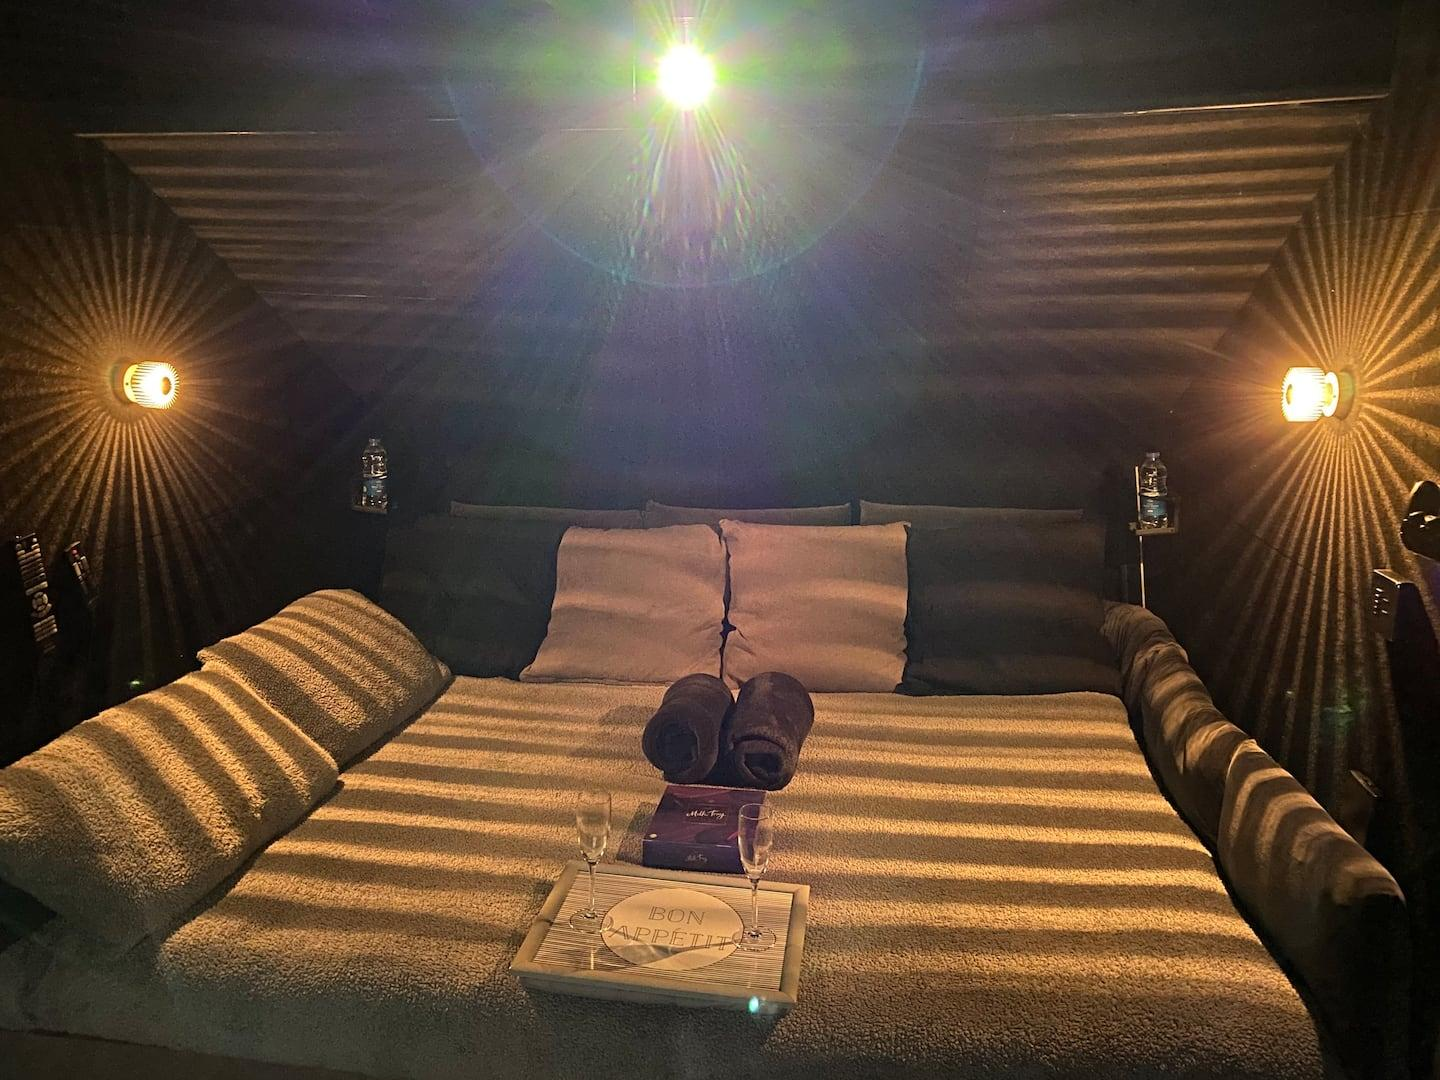 The Cosy Cinema: a private cinema sleepover just for you